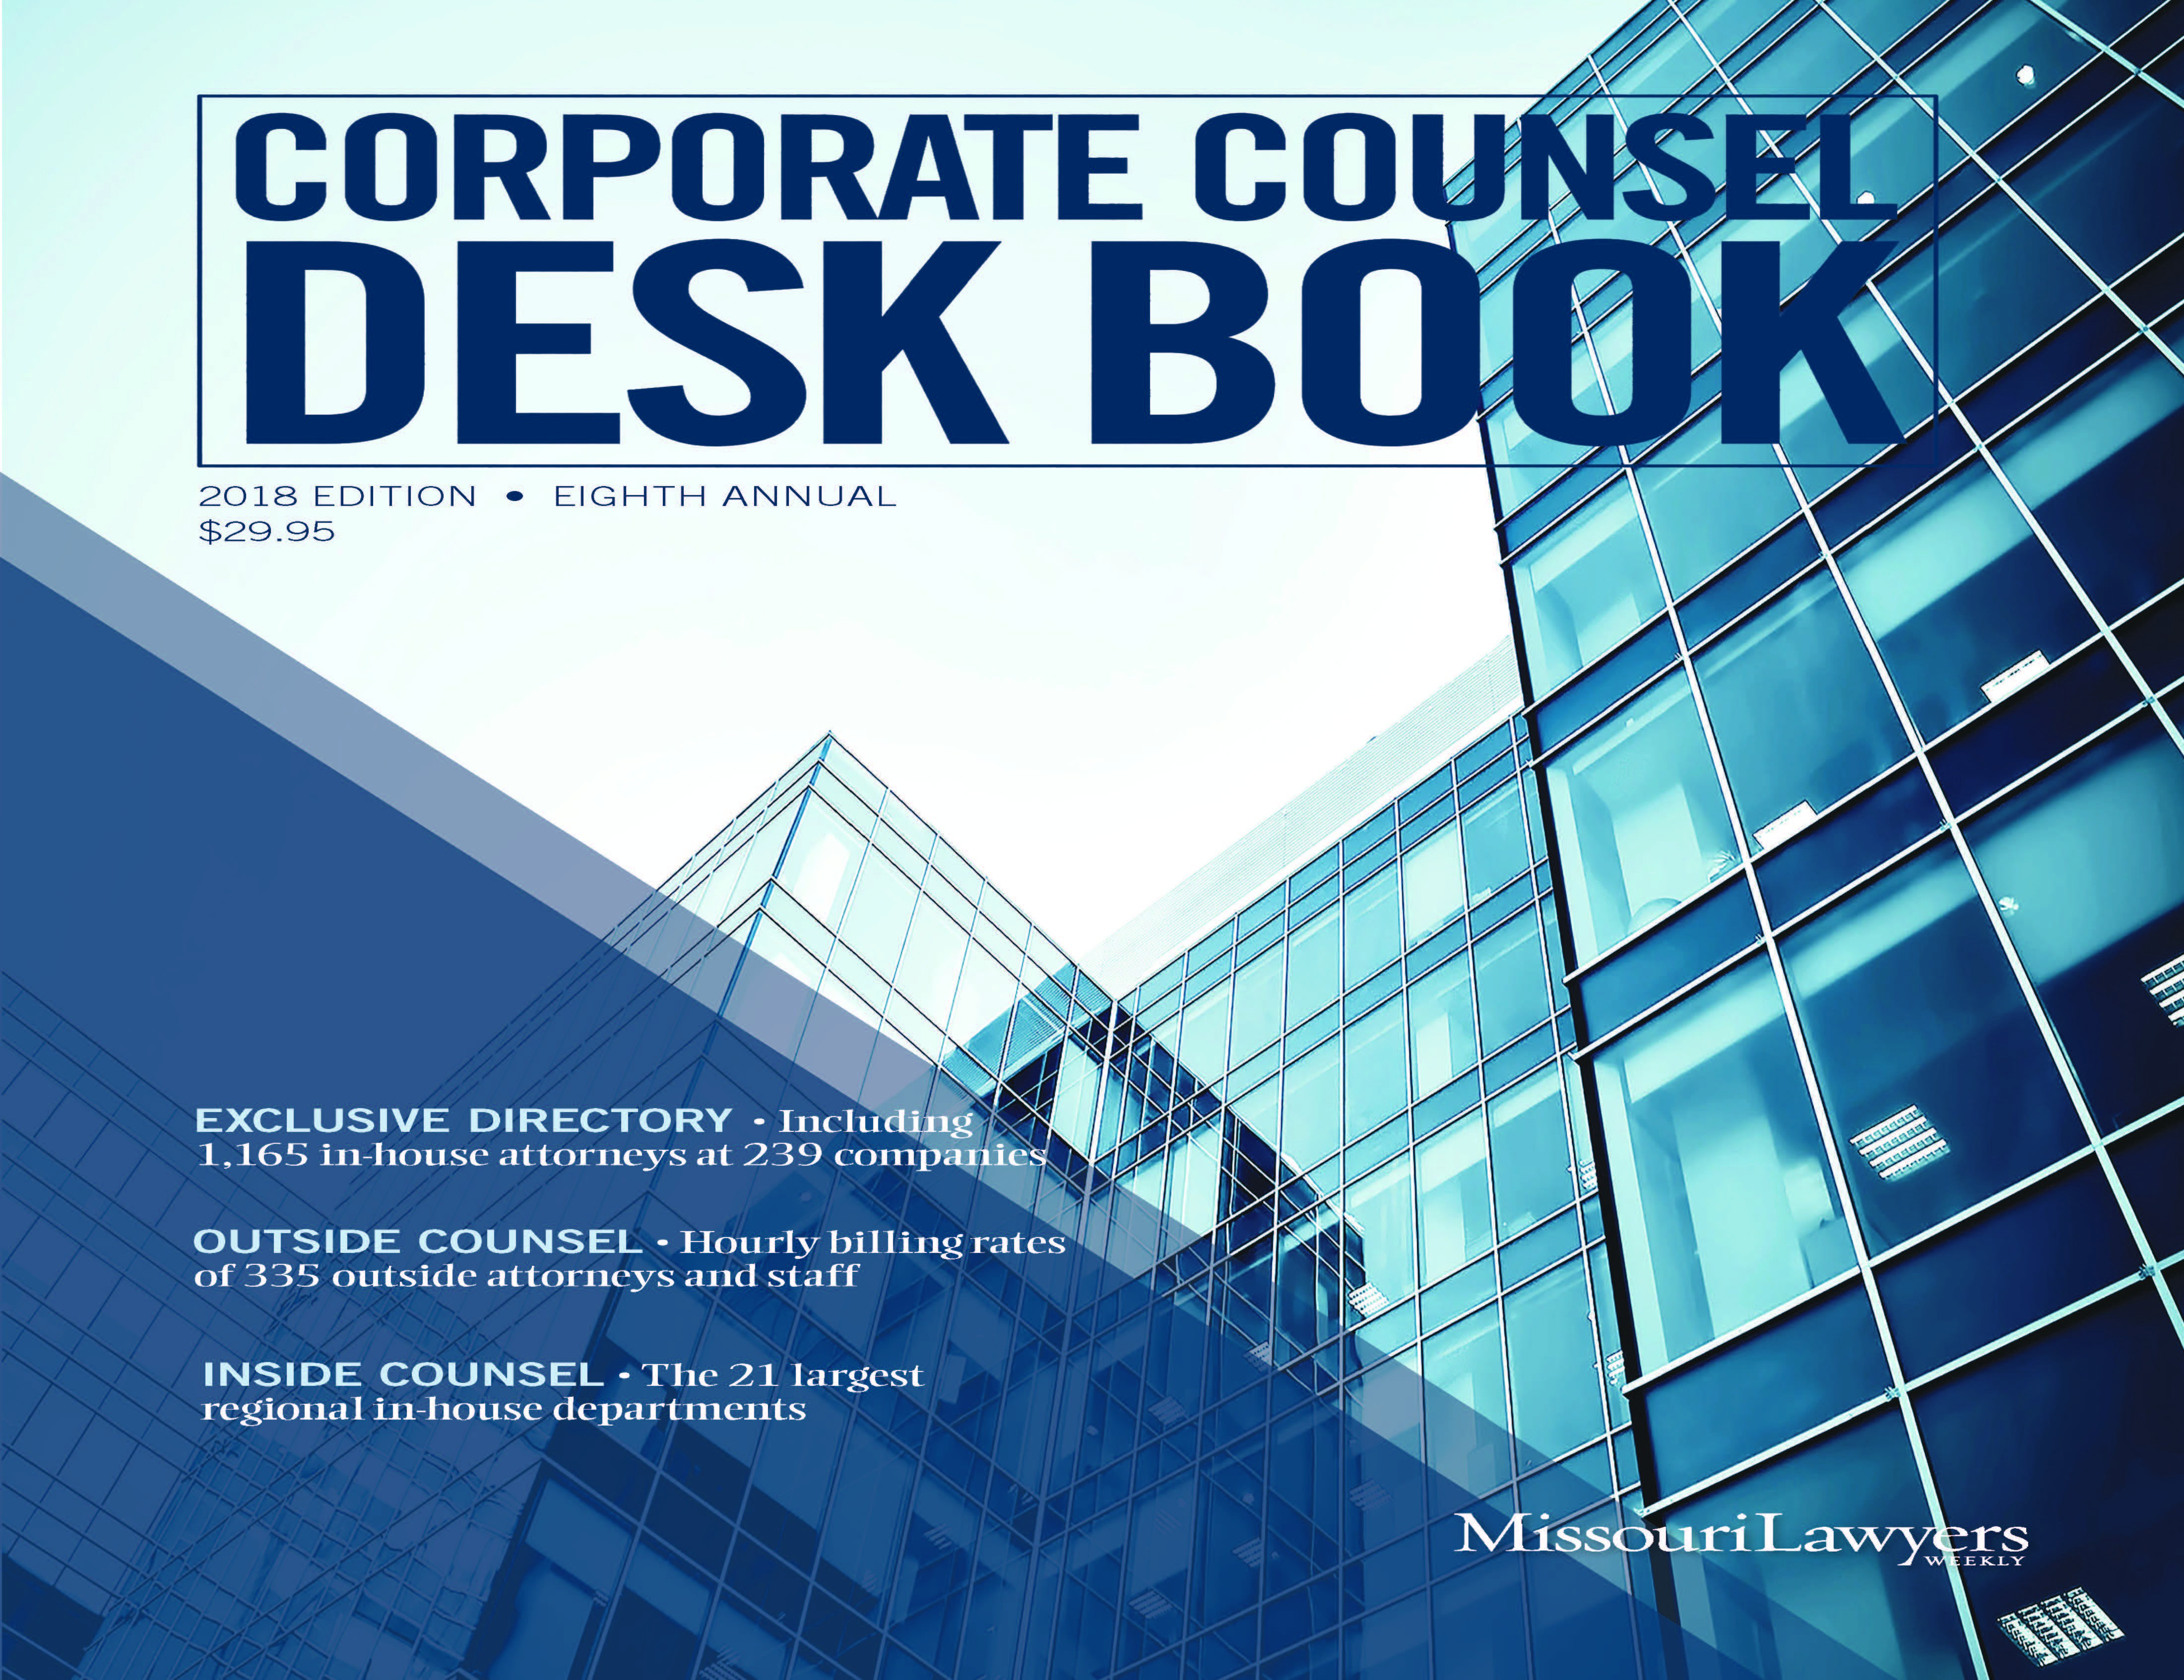 Corporate Counsel Desk Book 2018